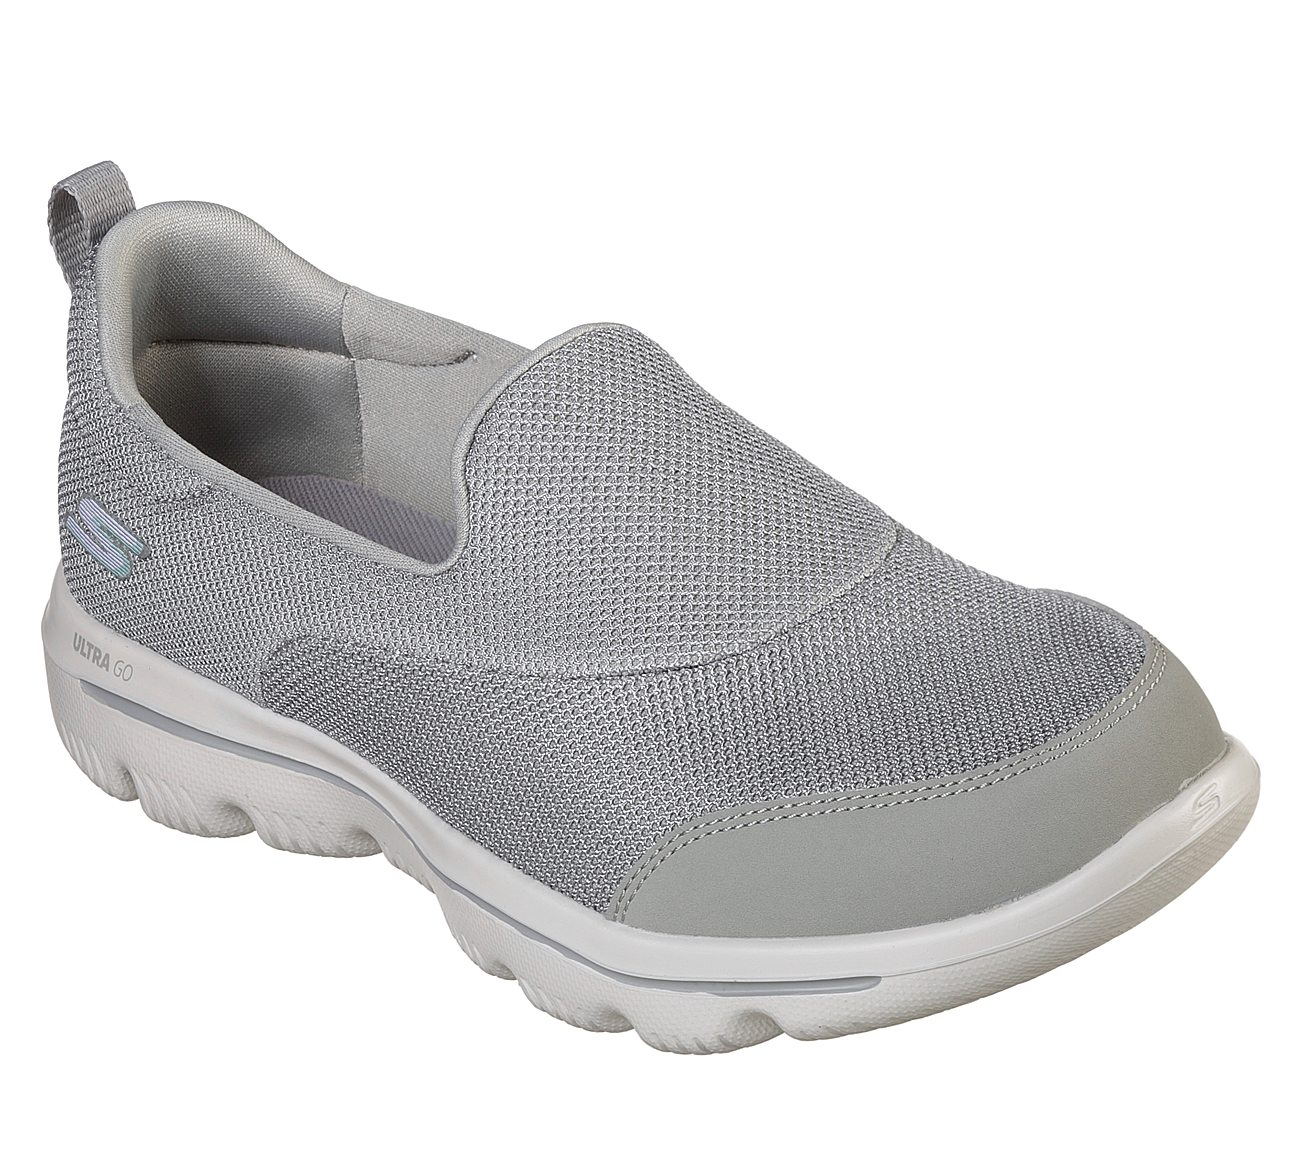 skechers go walk 2 waterproof